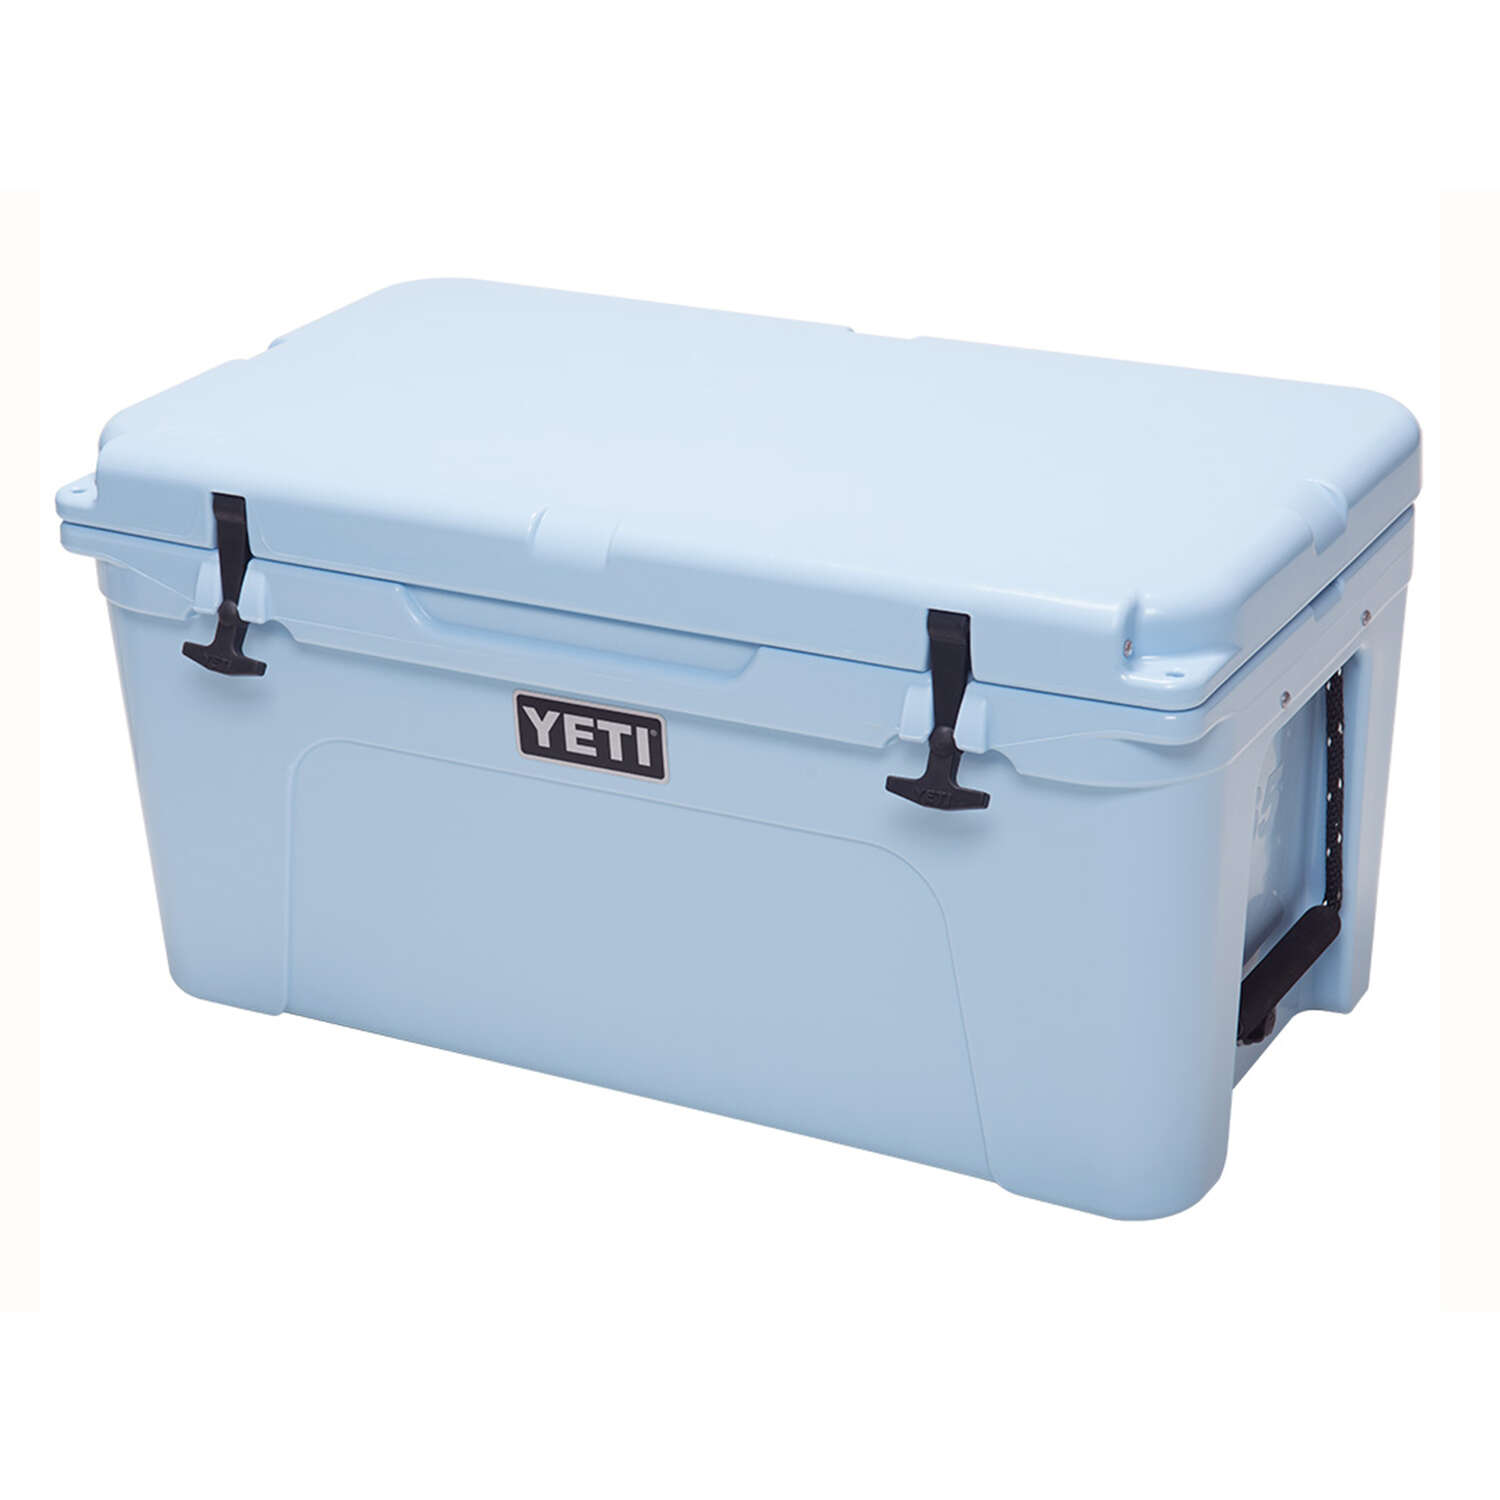 YETI  Tundra 65  Cooler  39 can Blue